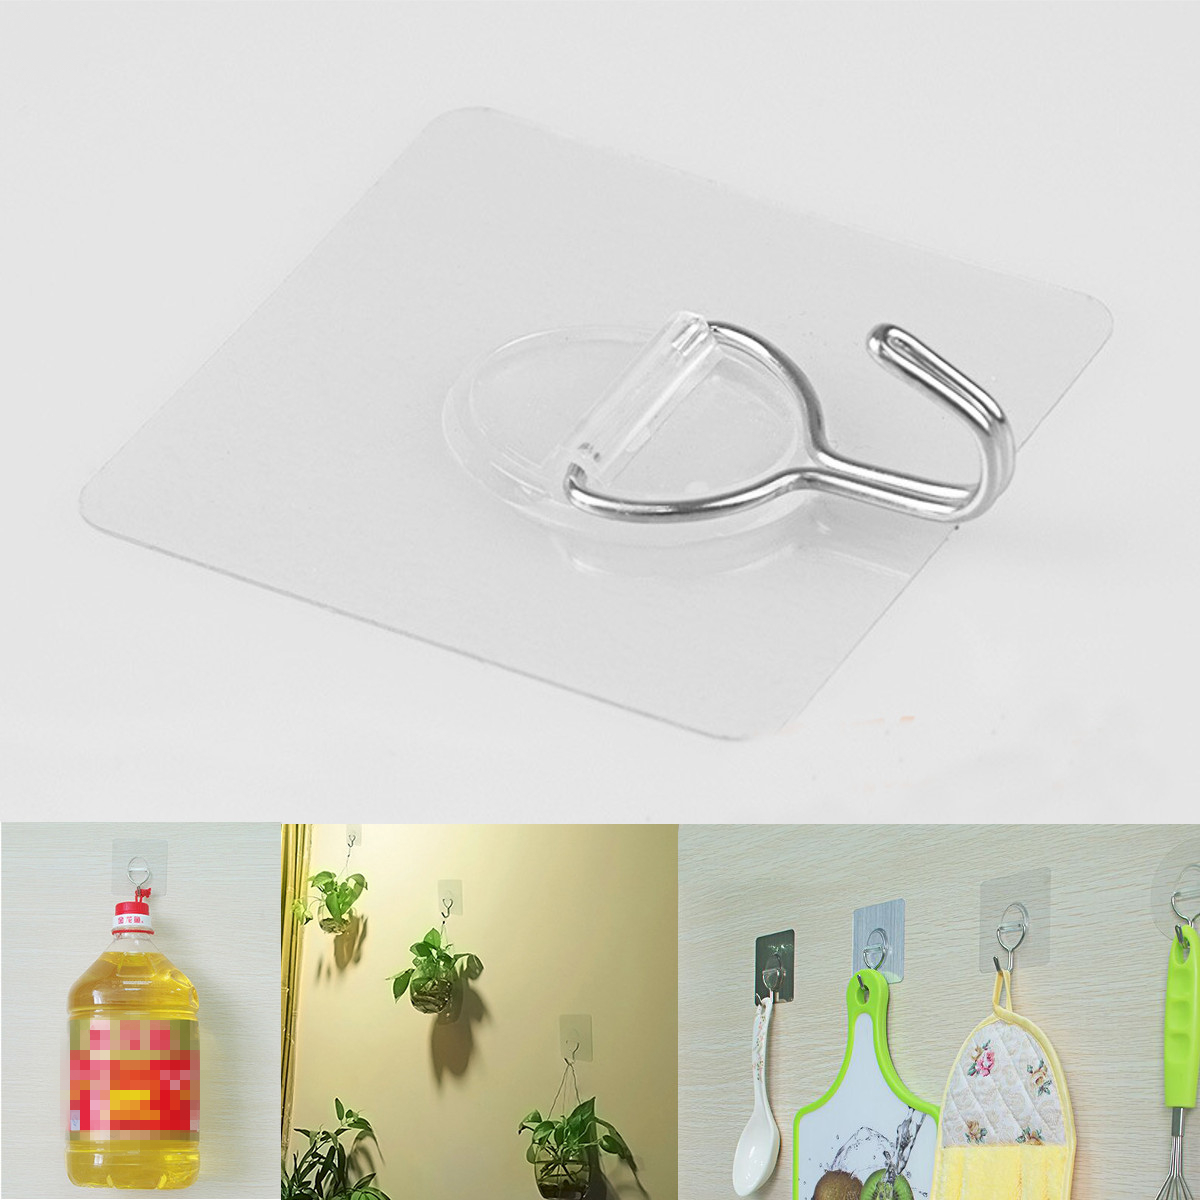 4Pcs 5kg Loading Clear Wall Hanger Hook Self Adhesive Stick Stainless Steel Hook for Bathroom Kitche